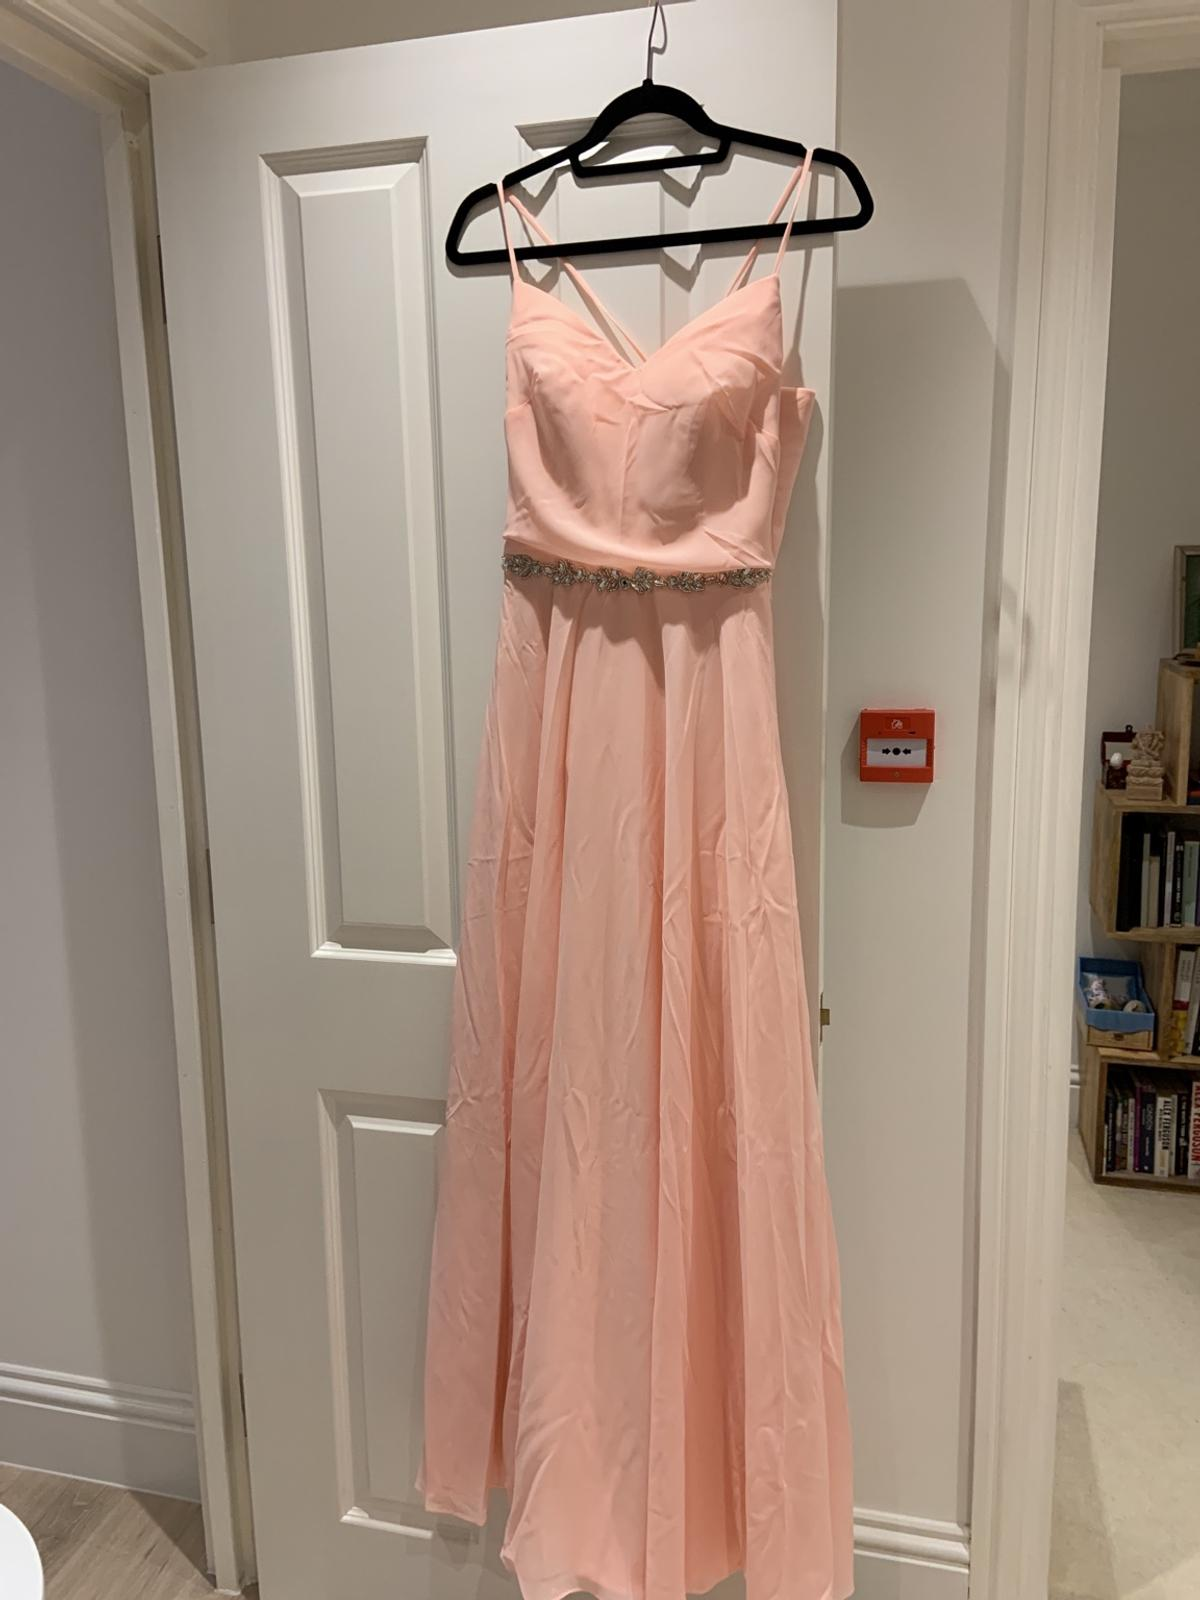 A brand new beautiful peach maxi dress with beaded belt detail, UK size 10-12. Never worn, labels still attached. comes in original packaging and with spare beads.